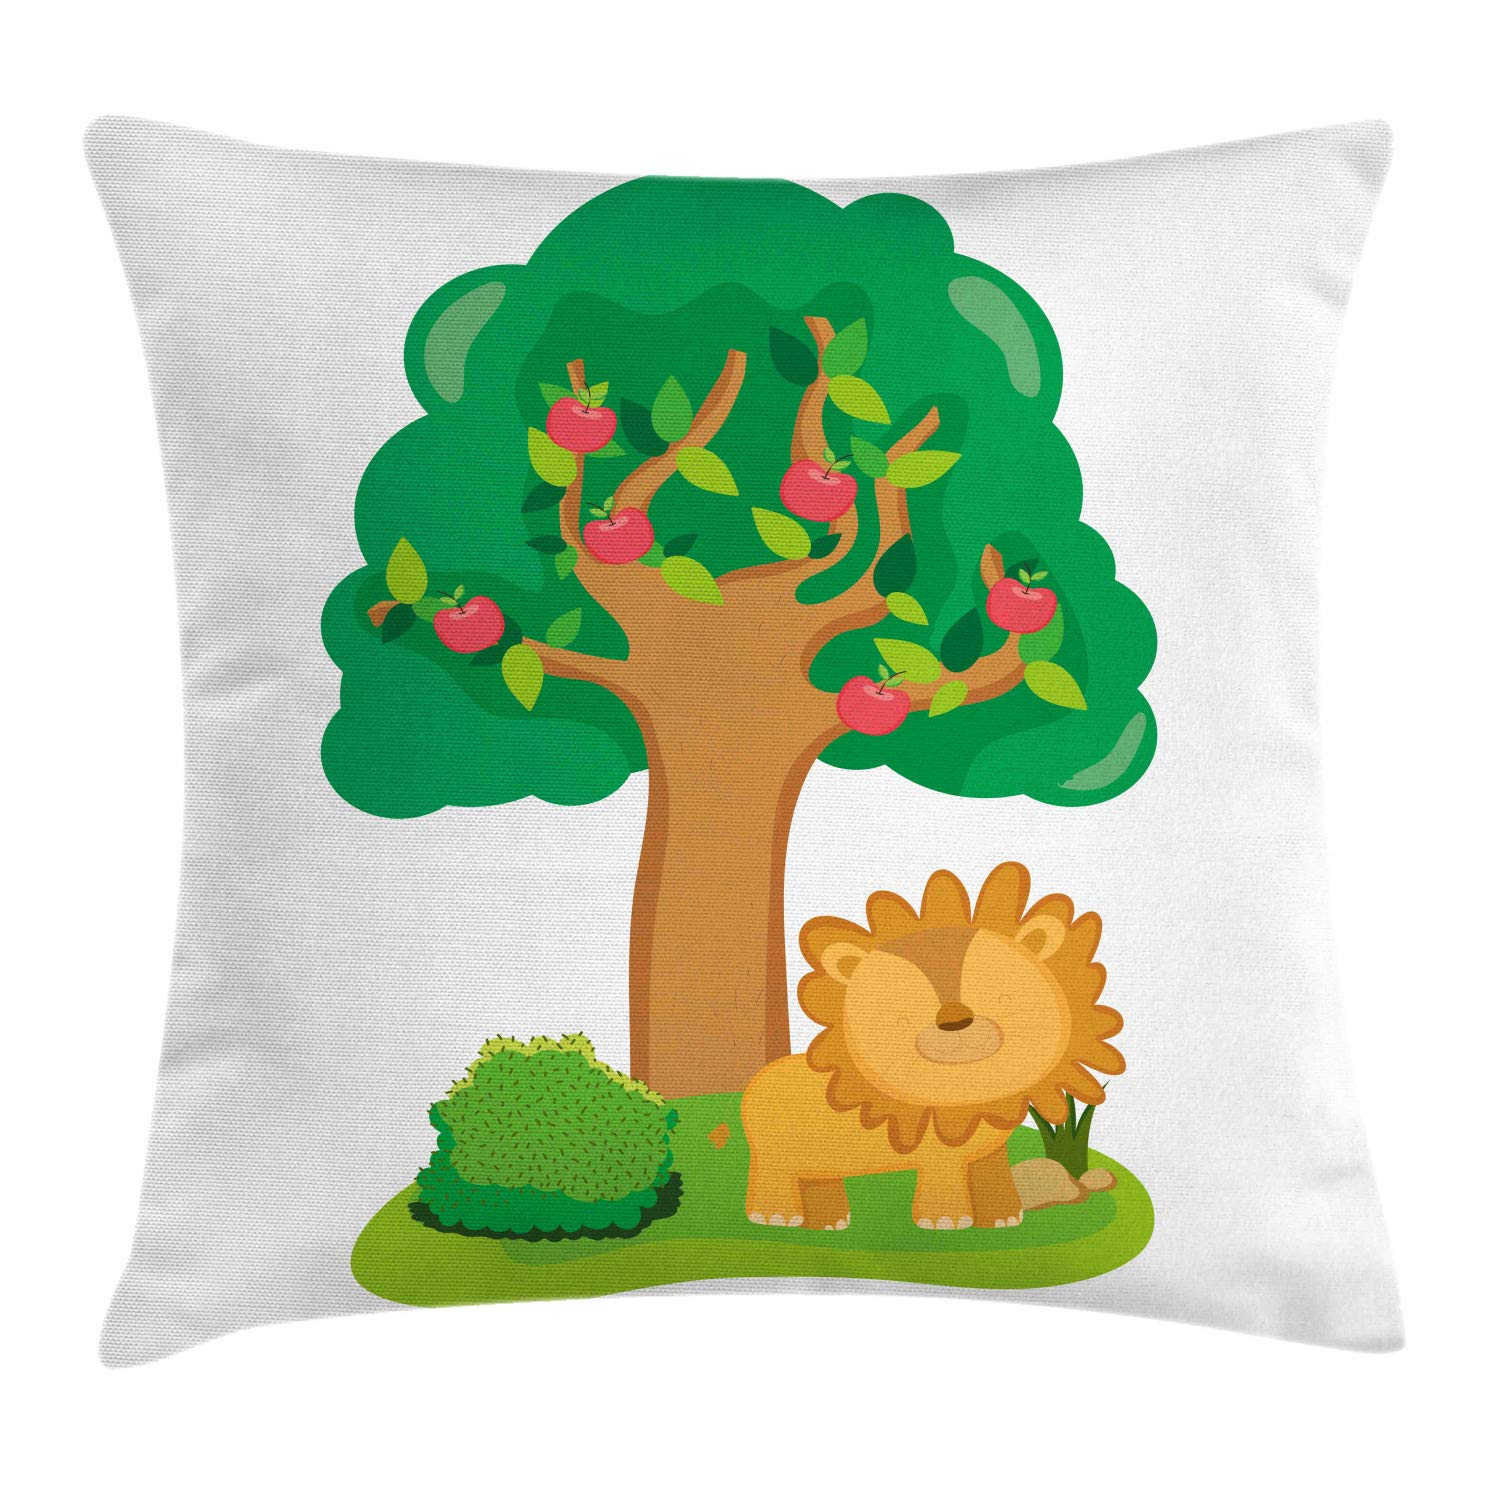 Lunarable Apple Tree Throw Pillow Cushion Cover, Nursery Cartoon Design with Fruit Trees and a Smiling Lion Character, Decorative Square Accent Pillow Case, 24'' X 24'', White and Multicolor by Lunarable